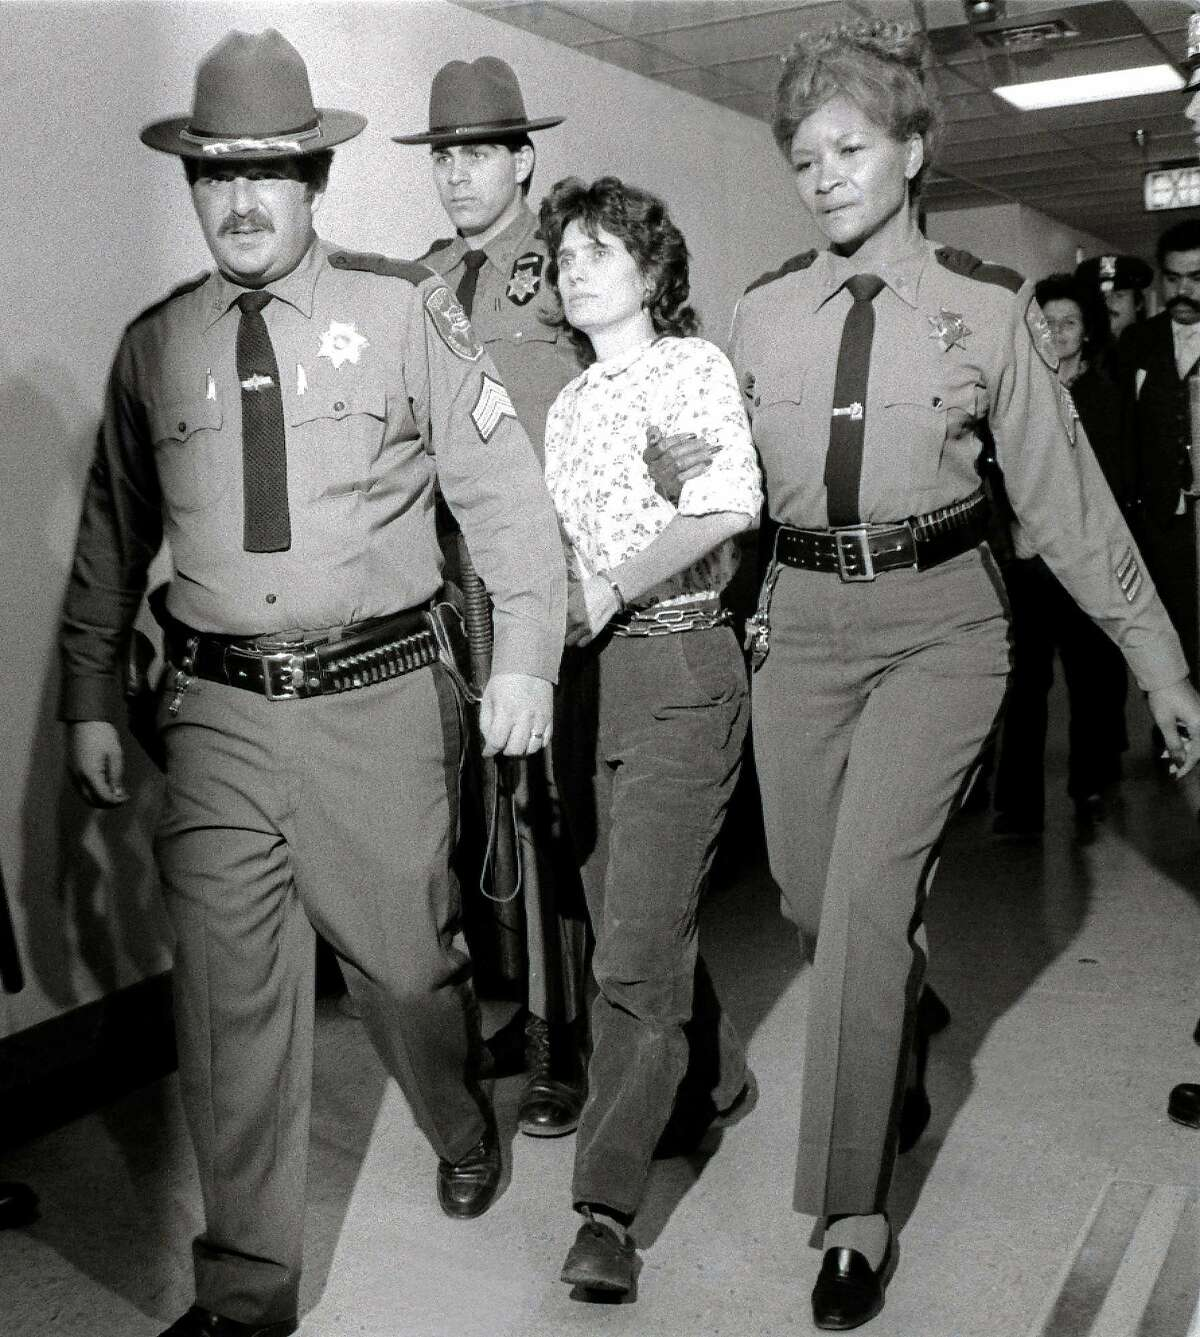 ** FILE ** Weather Underground member Katherine Boudin is led from Rockland County Courthouse in New City, New York, by sheriff's officers in this Nov. 21, 1981 file photo. Boudin learned her son, Chesa, had been named a Rhodes Scholar in a phone call to prison, where she has spent all but 14 months of his life. Chesa Boudin, a 22-year-old Yale senior and activist who speaks widely on the problems of children with incarcerated parents, was among the 32 American college students selected Sunday, Dec. 8,2002, for Rhodes scholarships. Boudin, the '60s radical who has served 22 years in prison for a 1981 armored car heist in which three men were killed, was granted parole Wednesday. She will be released prior to Oct. 1, 2003, from the Bedford Hills state prison in Westchester County, N.Y. (AP Photo/Handschuh, File) HOUCHRON CAPTION (08/21/2003): Officials did not explain the decision to parole Katherine Boudin, shown at her 1981 arrest.